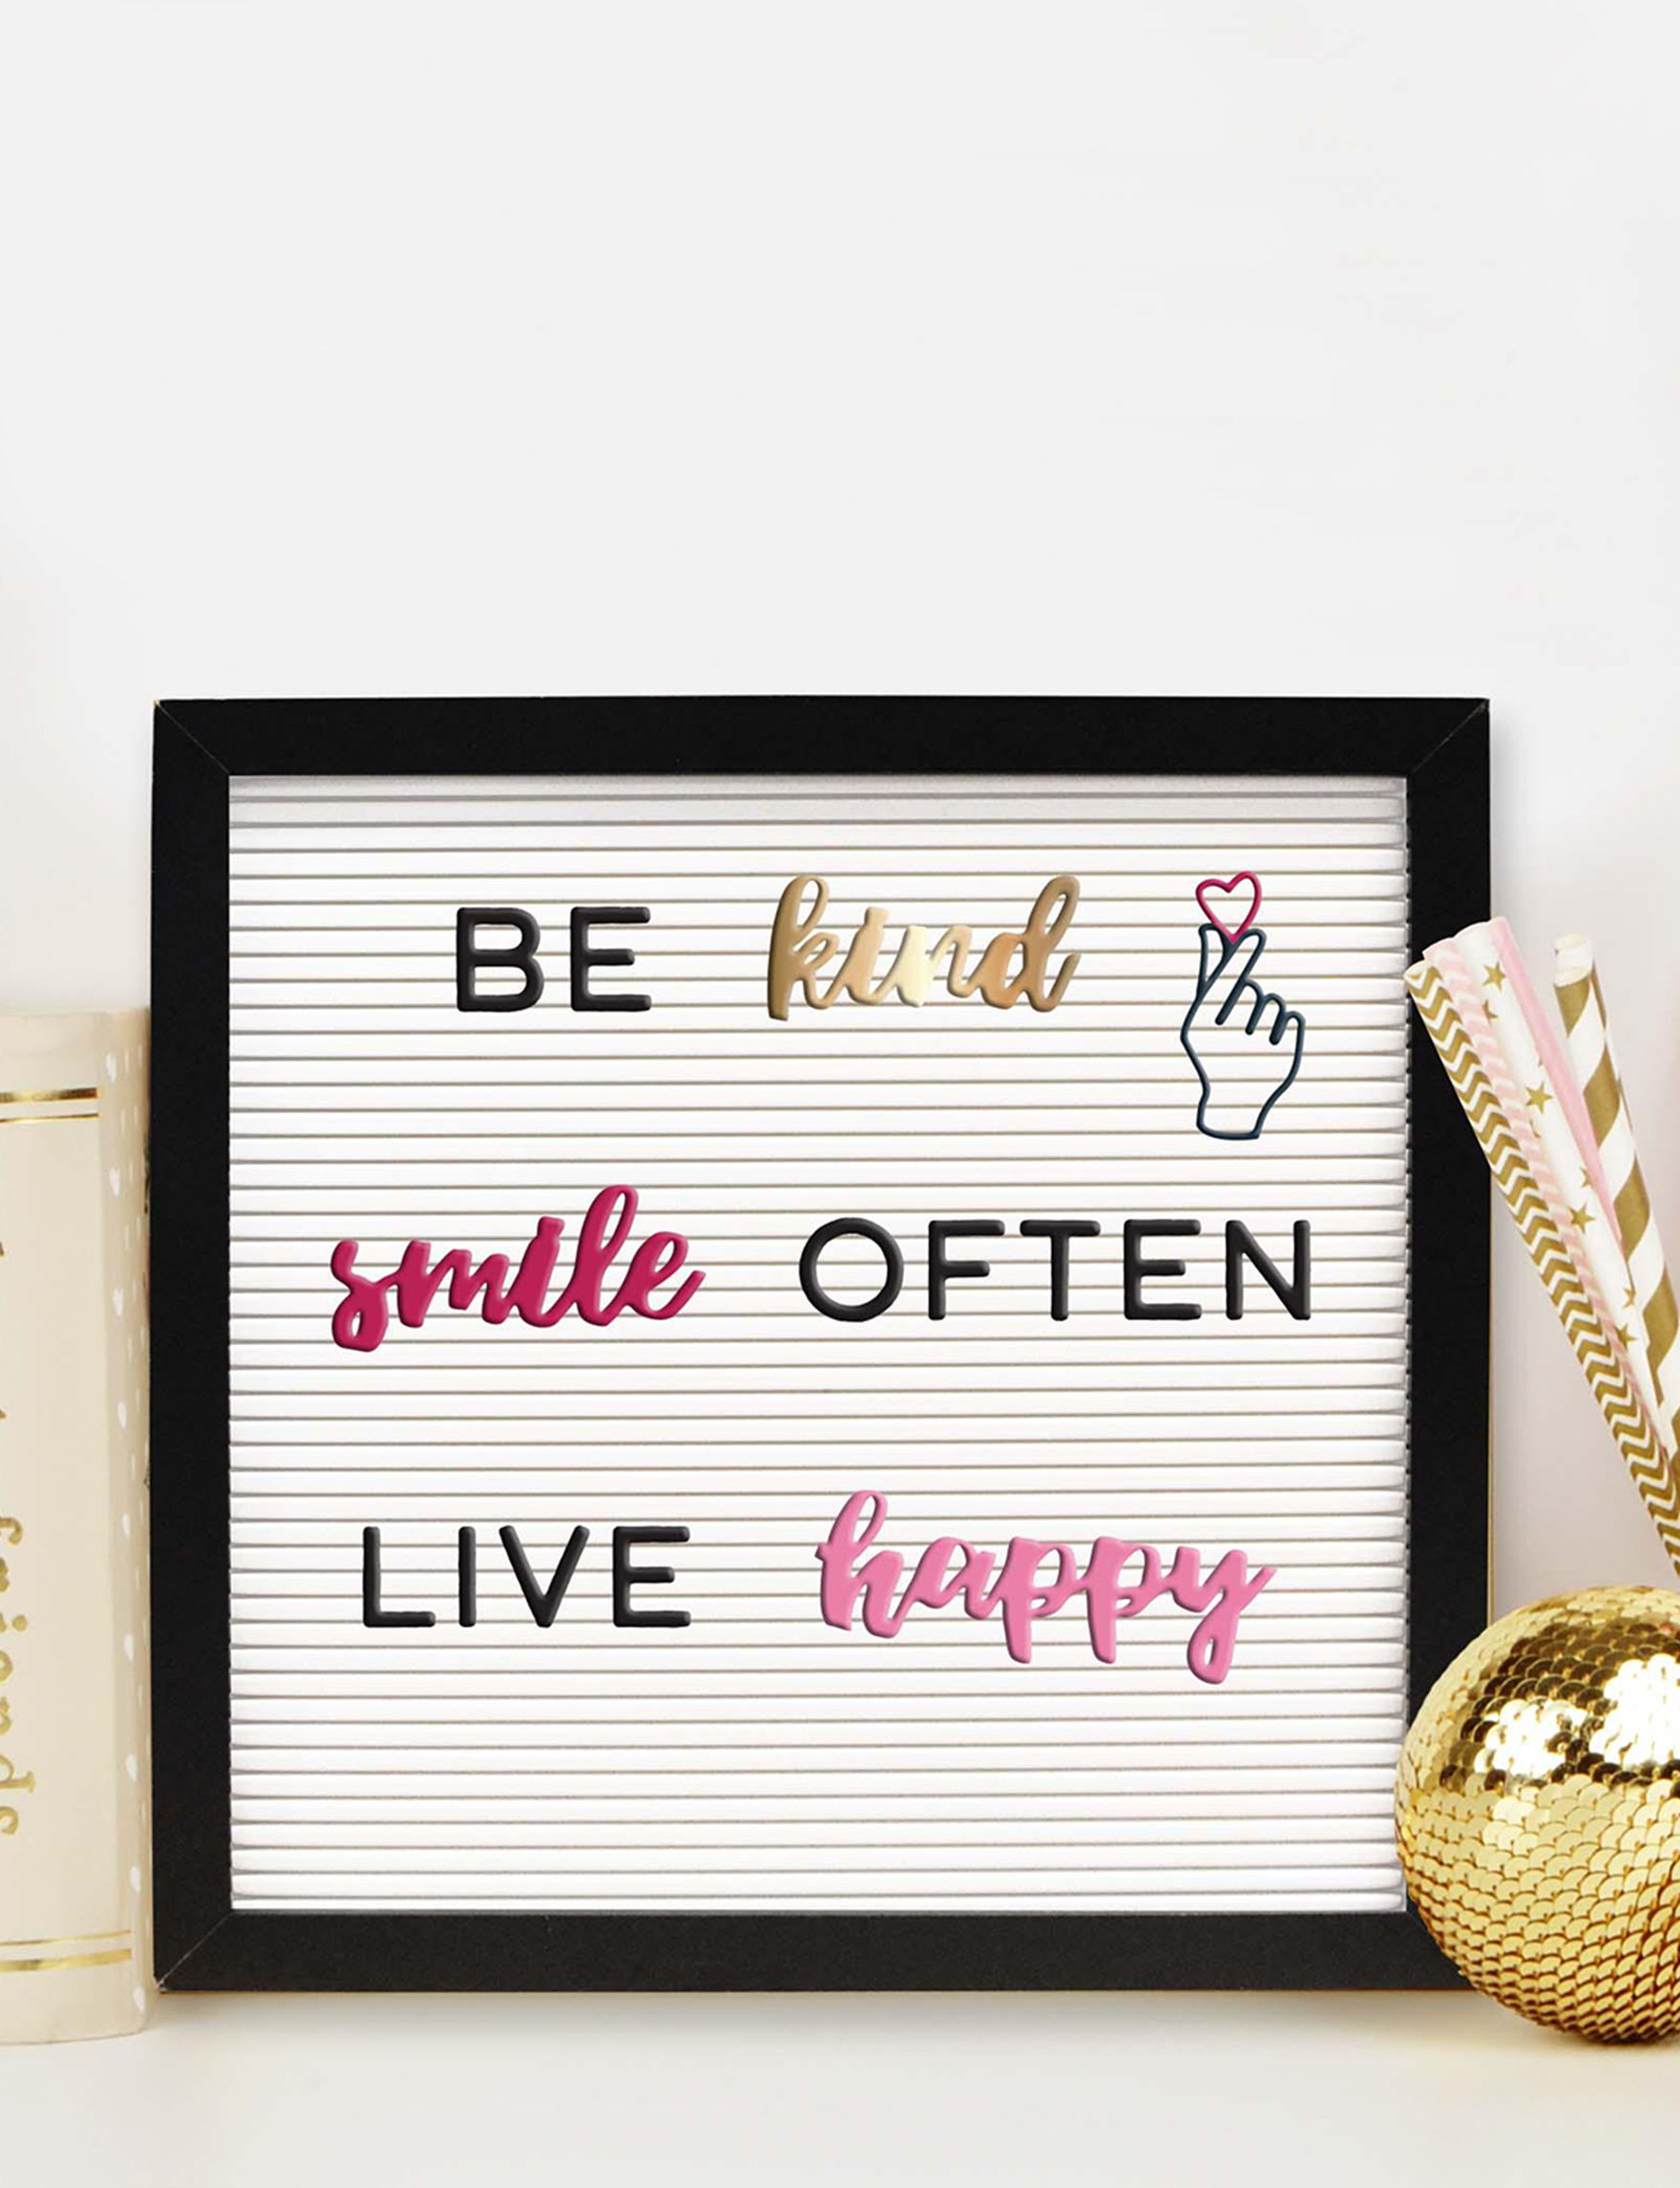 New View Pc Inspirational Words Icons Letter Board Pack - Inspirational words for new home